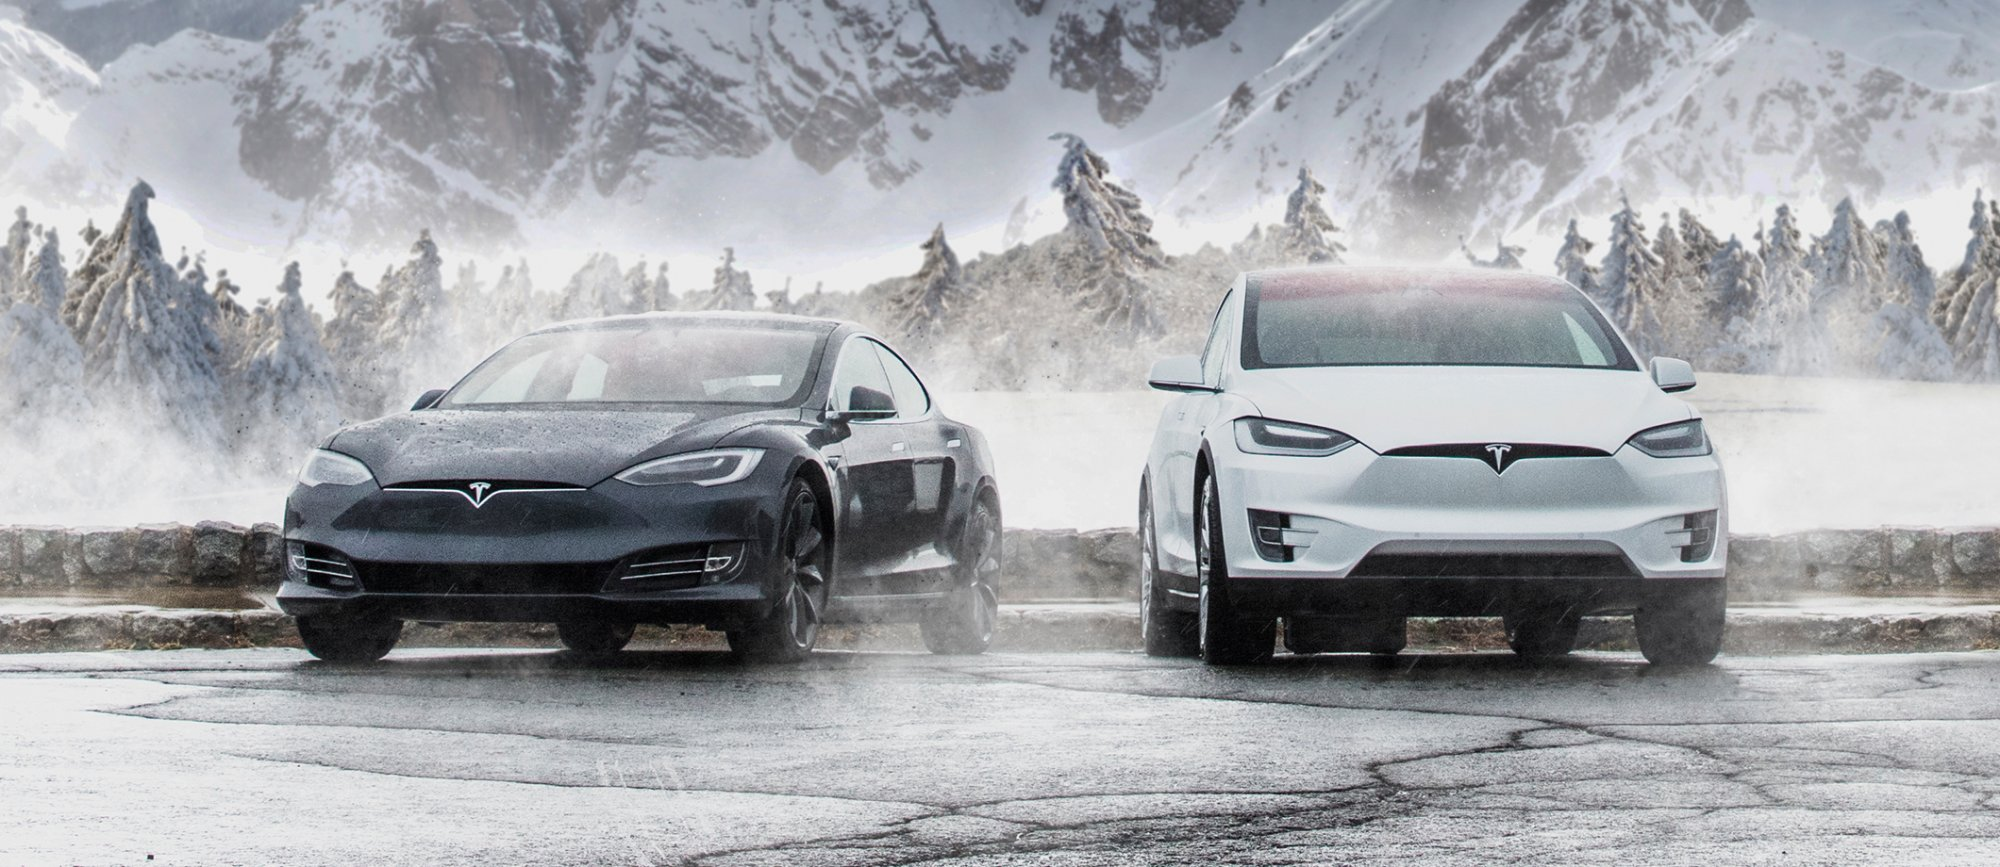 Electric vehicle sales achieve new record in Norway with 45% of new cars being all-electric and 60% plug-in